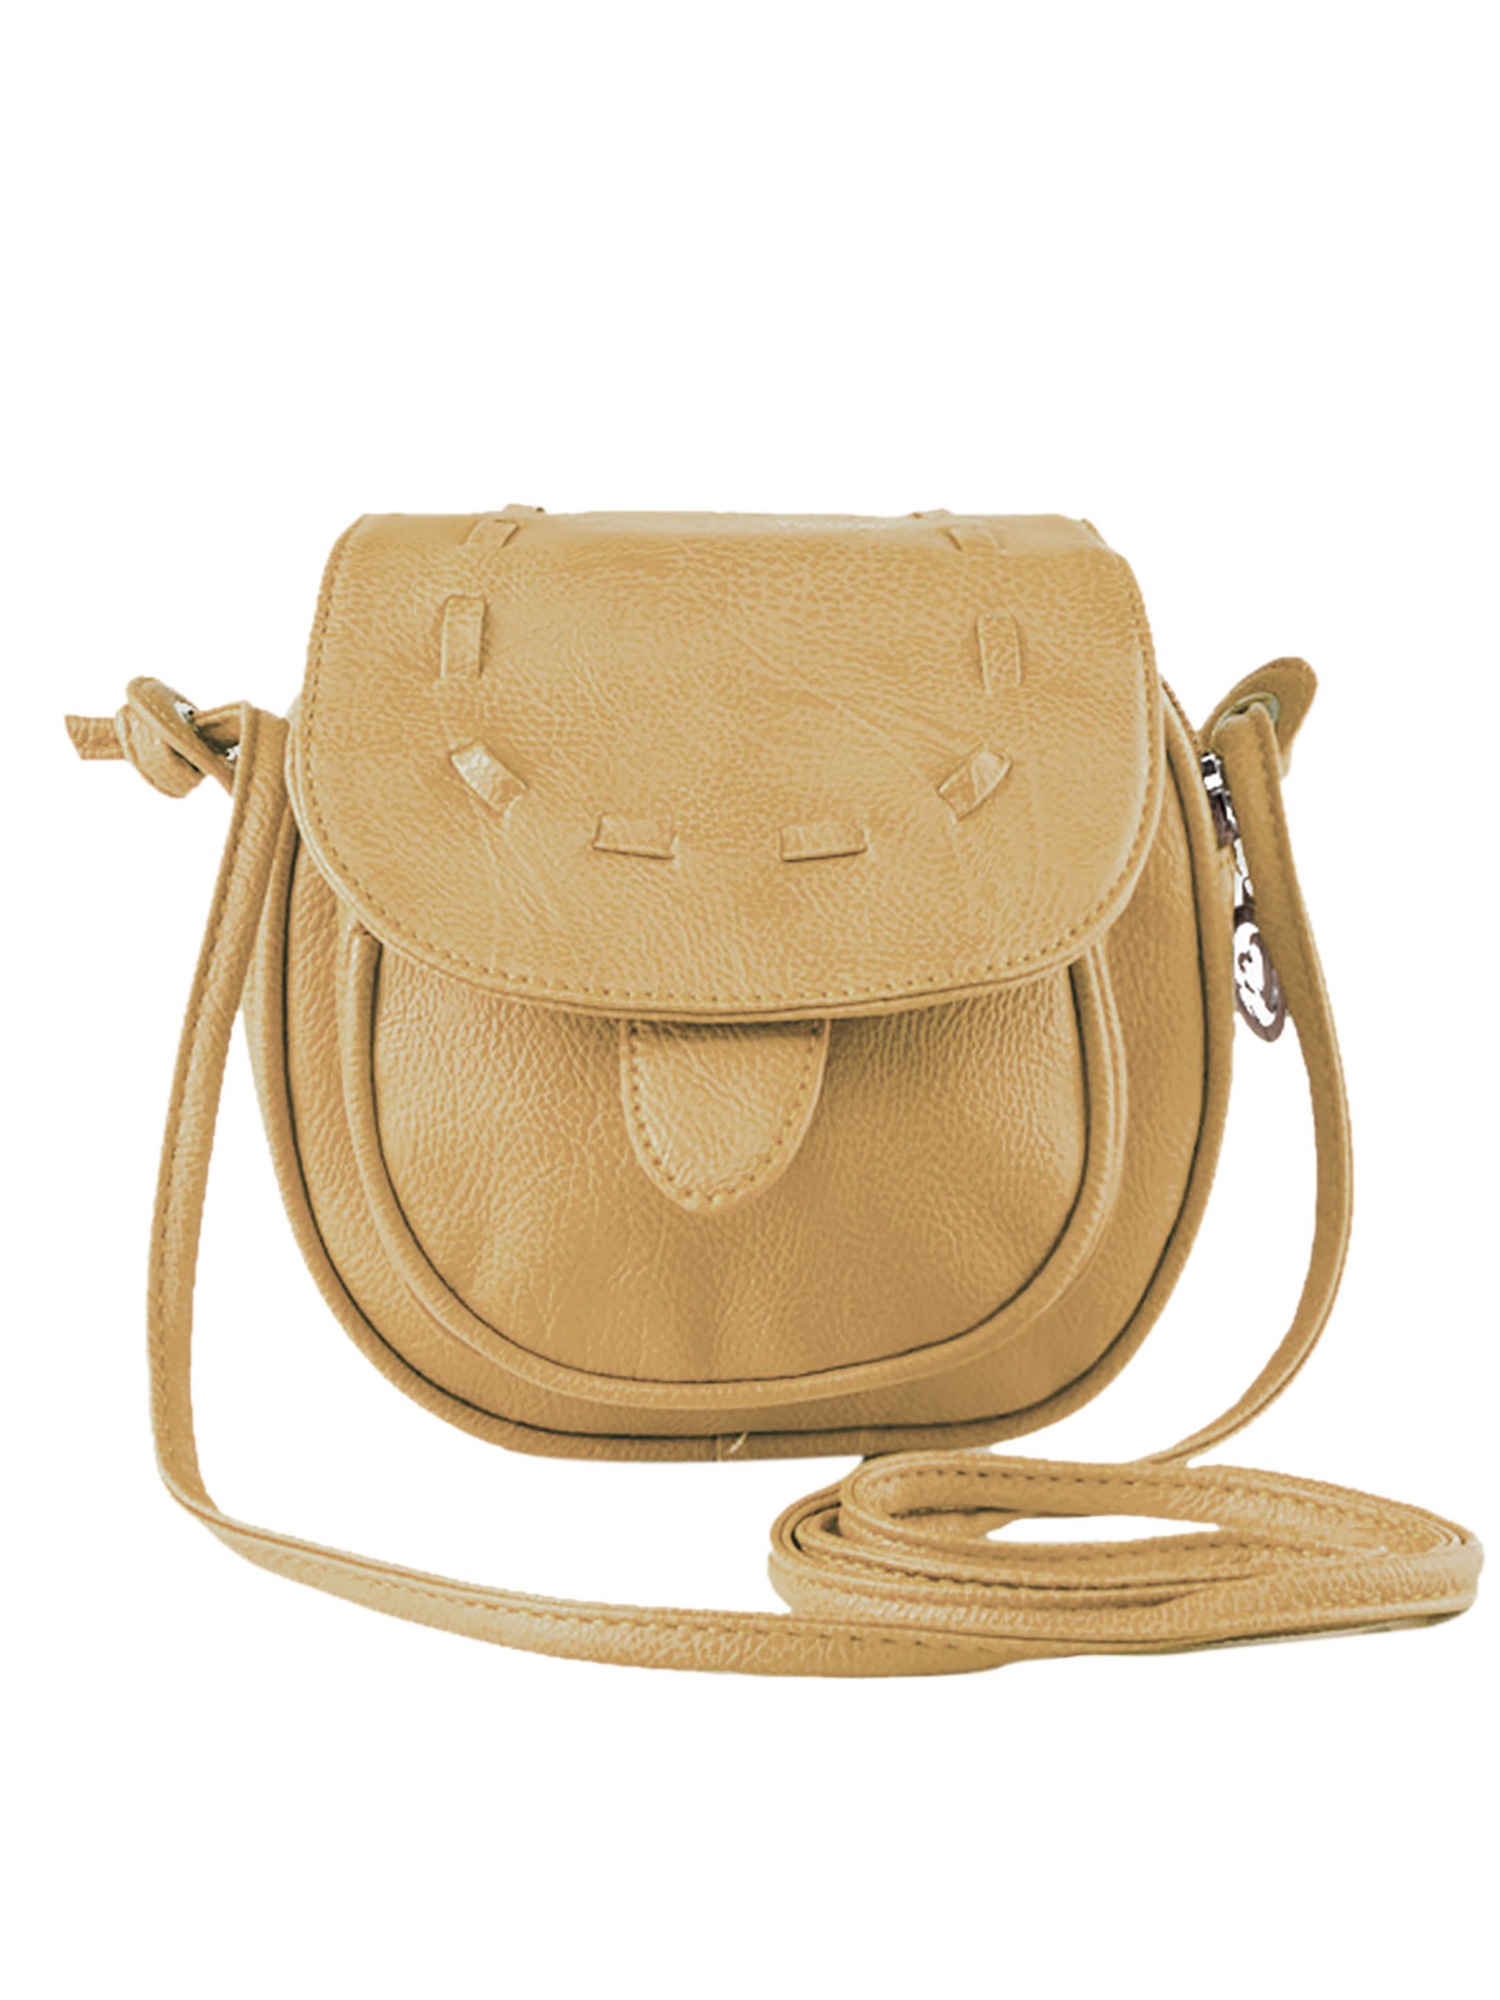 Unique Bargains Women's Flaptop Stitching Leatherette Mini Crossbody Bags